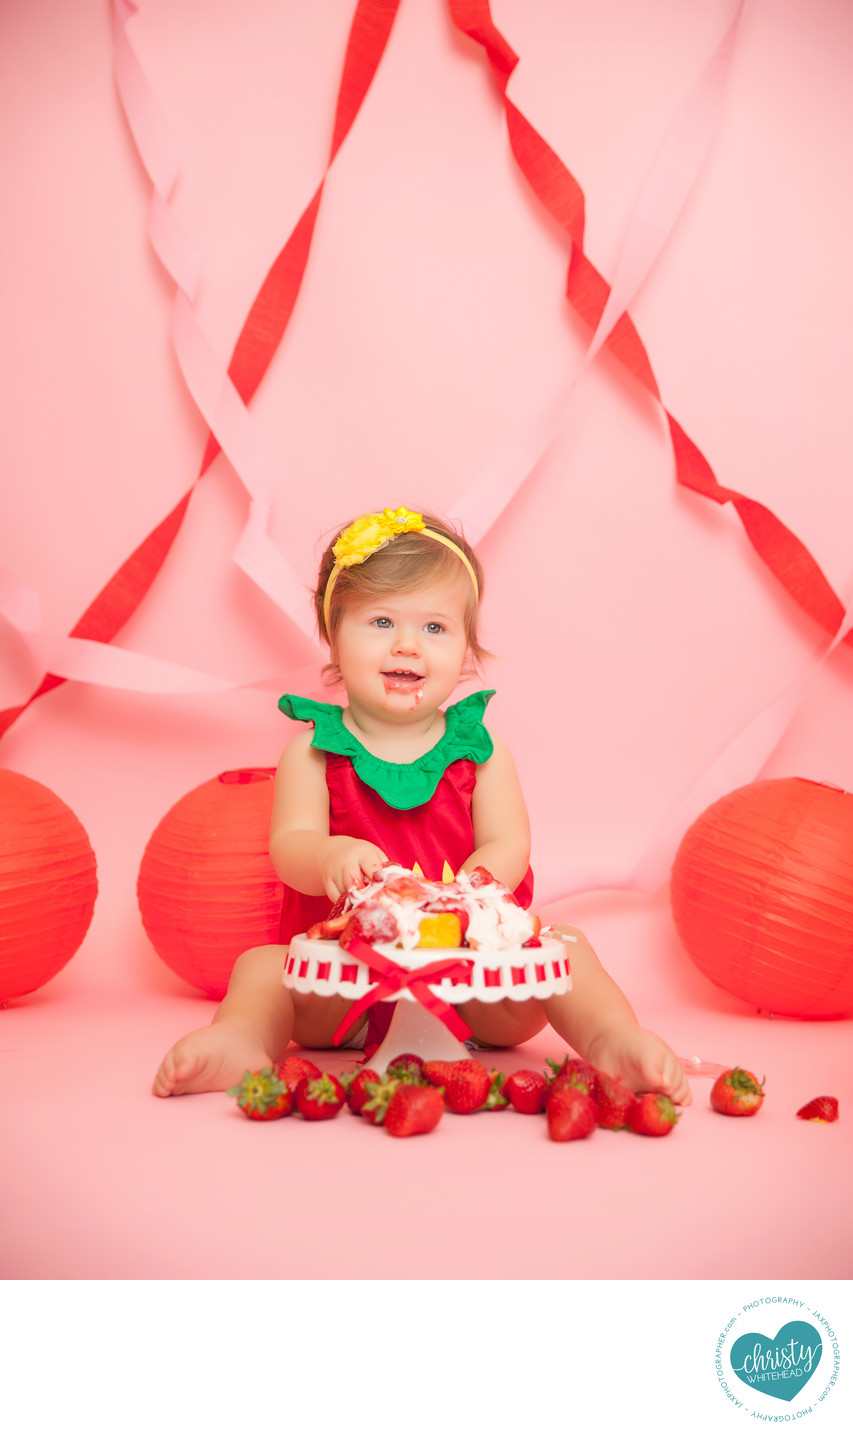 Little Girl Strawberry Shortcake Cake Photo Shoot